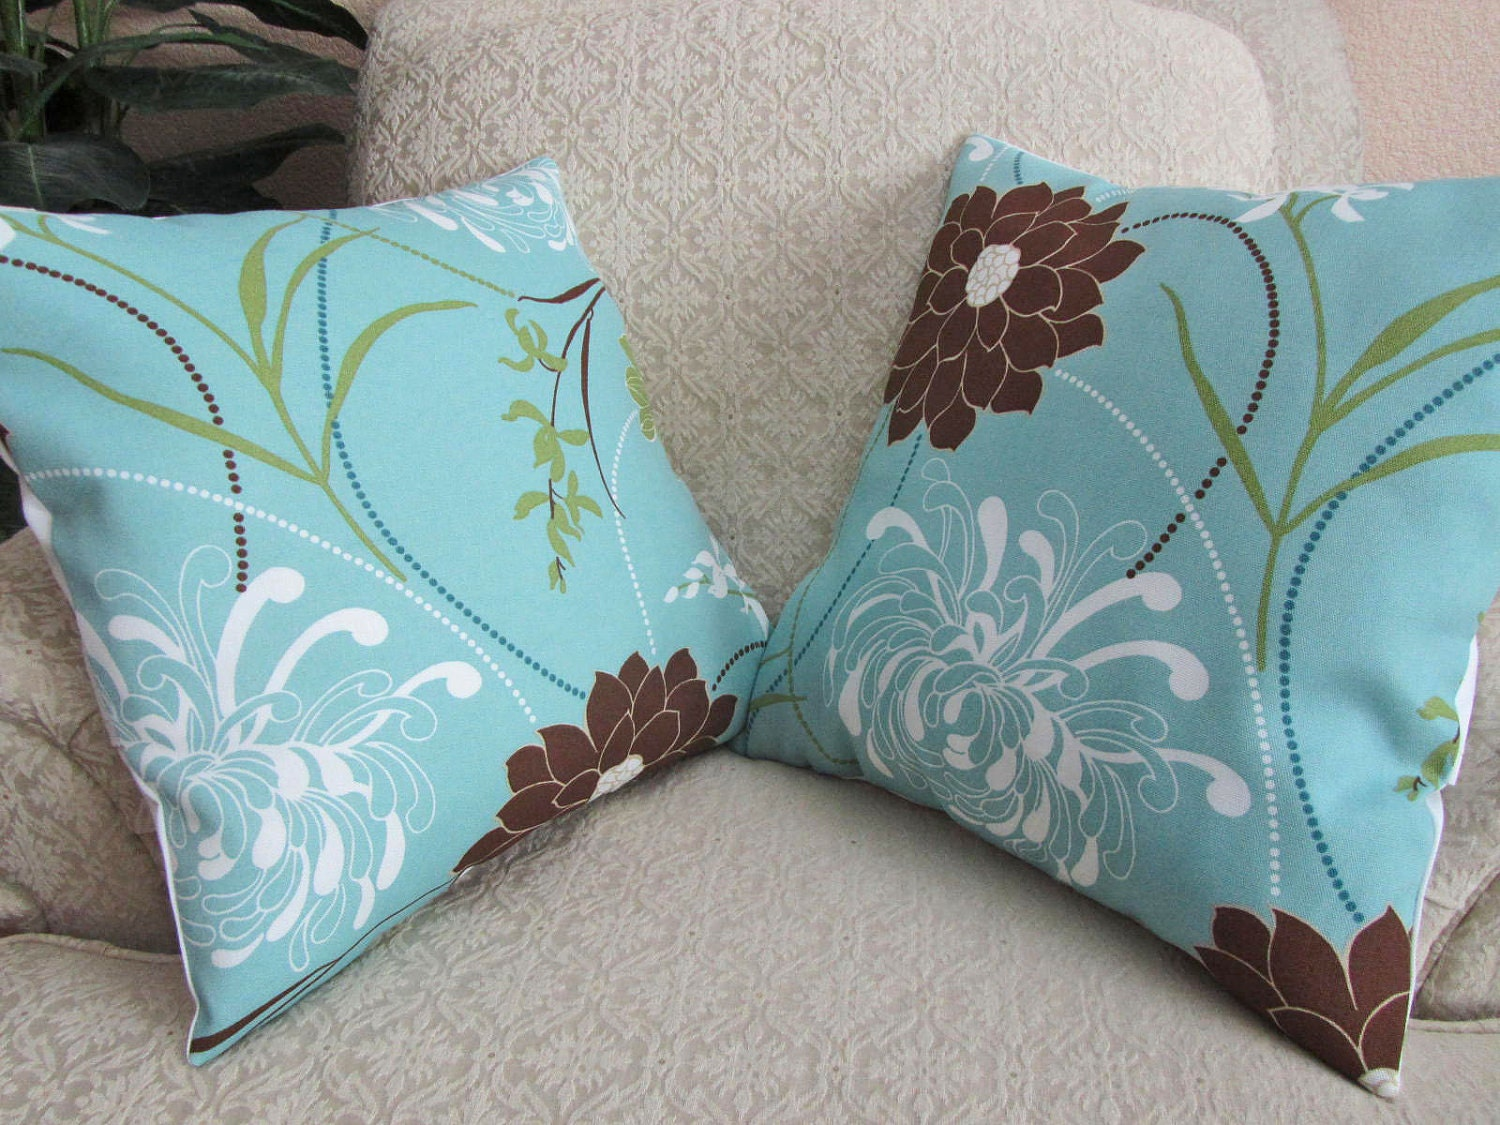 Spa Blue Throw Pillows : Decorative Throw Pillow Cover Spa Blue Brown Set of Two 18 x